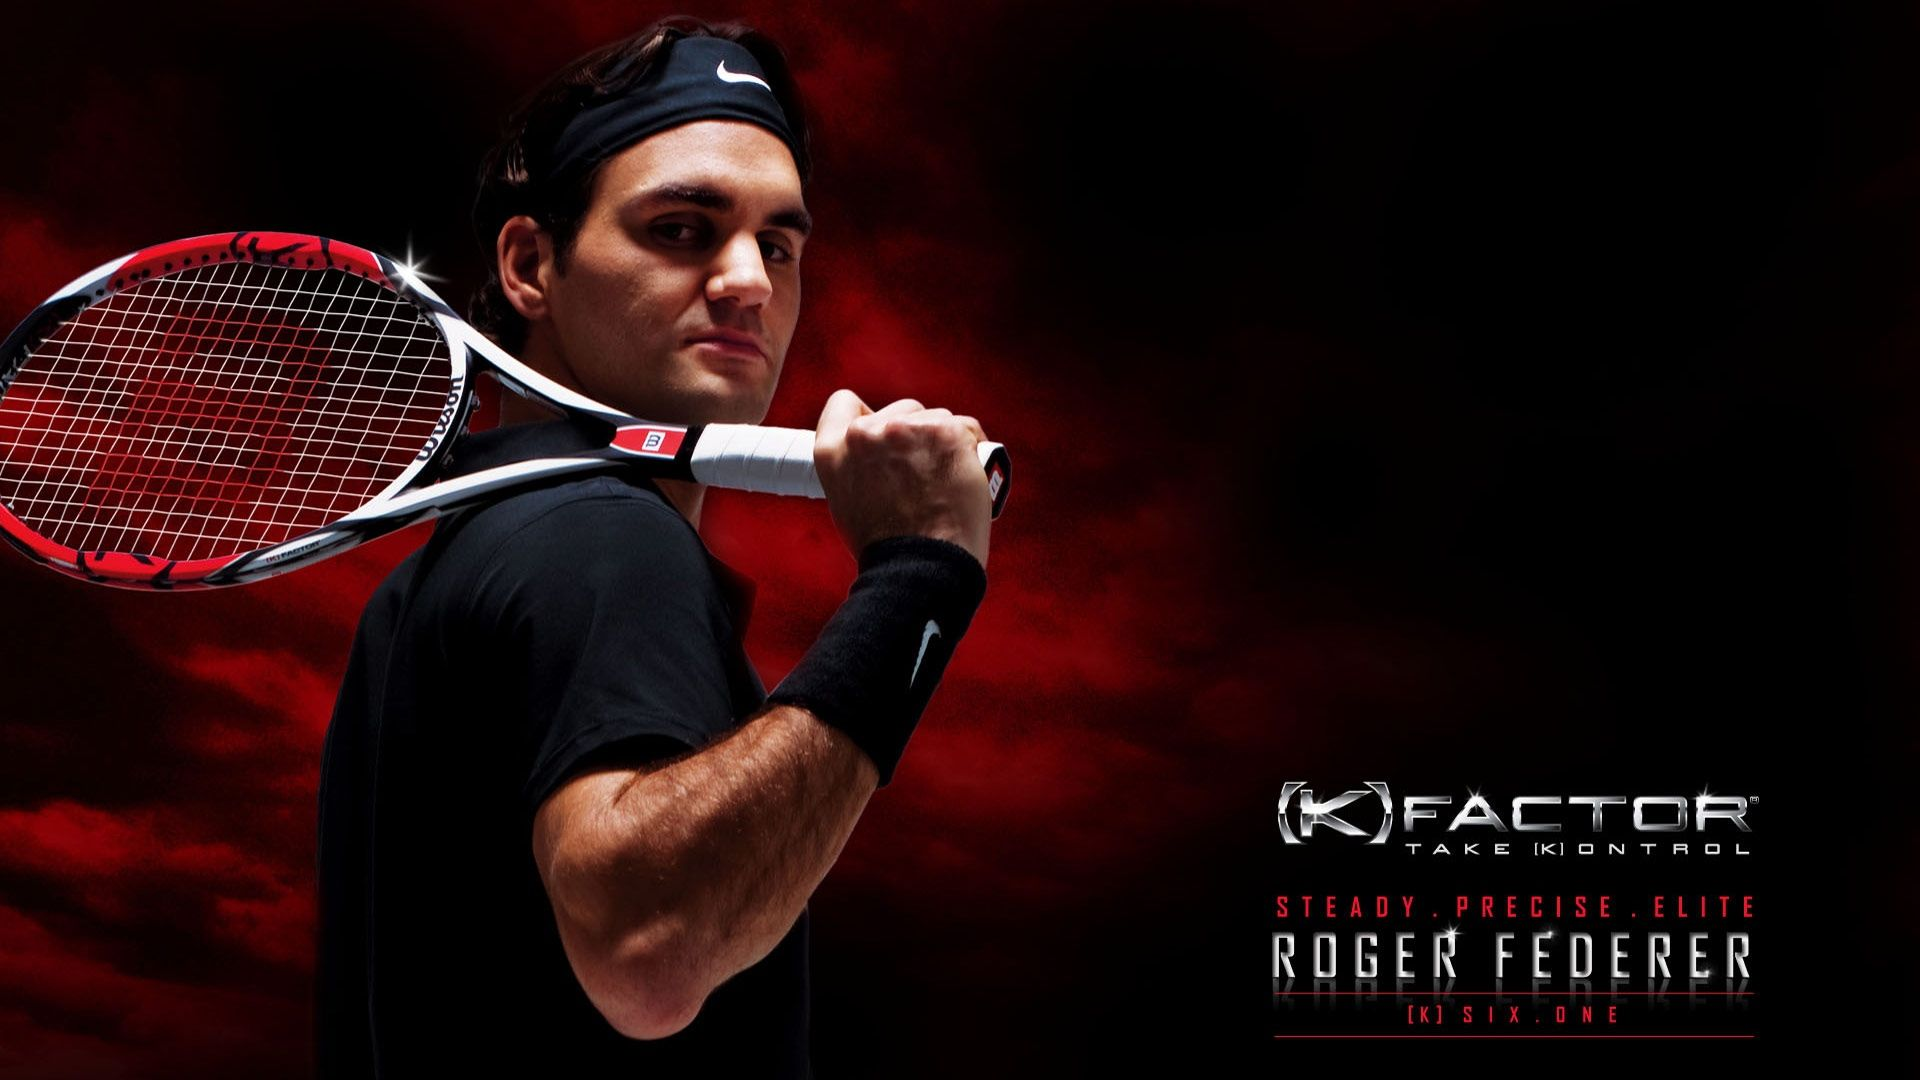 Full Hd 1080p Roger Federer Wallpapers Hd Desktop Backgrounds Roger Federer Tennis Tennis Stars